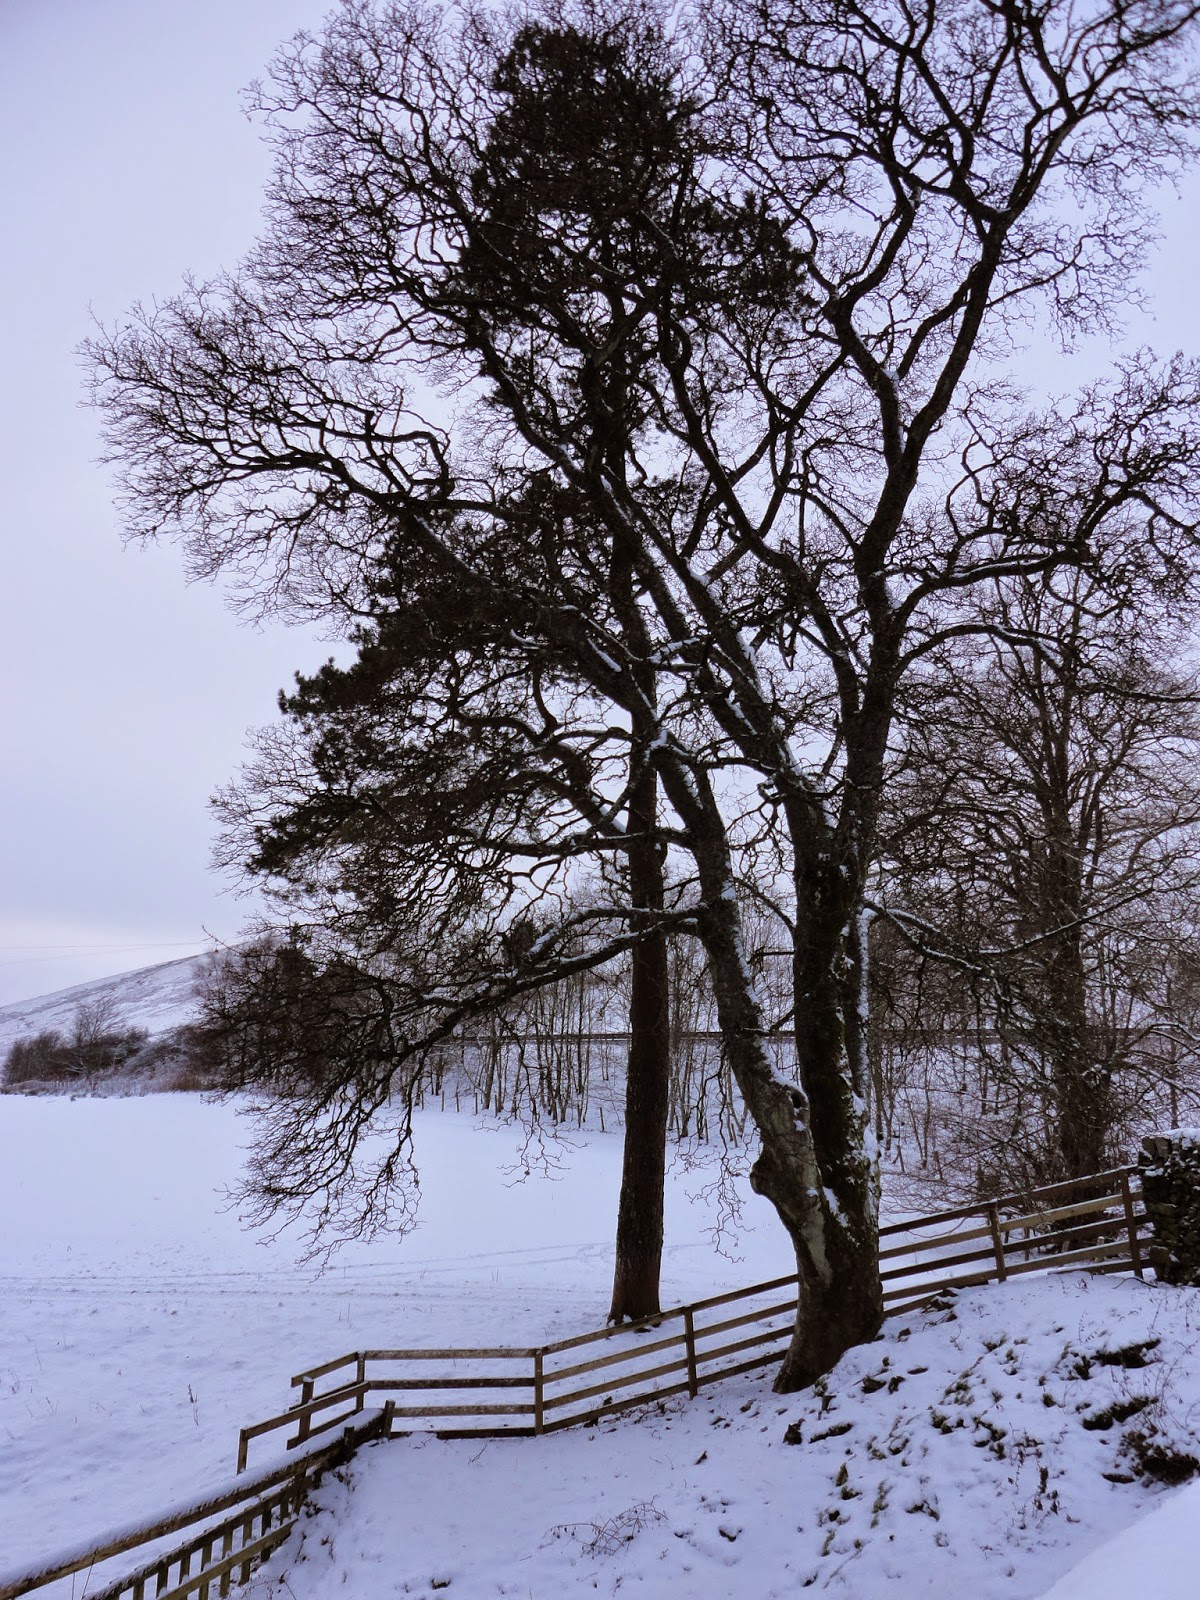 country farm landscape with trees, hills and snow in winter in scotland